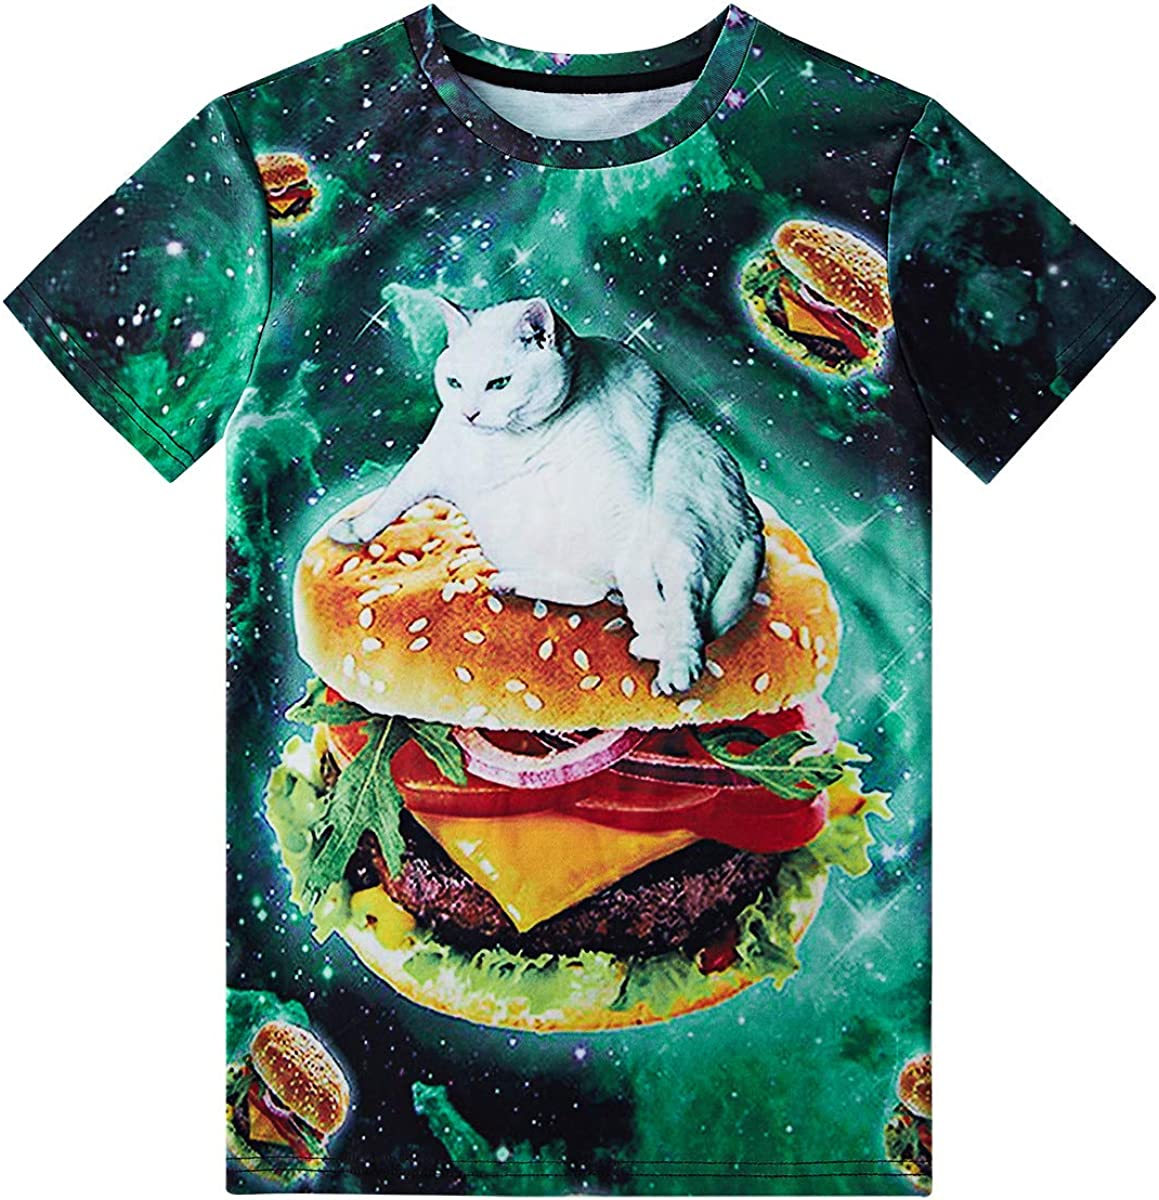 Loveternal Boys Girls Funny 3D Graphic Polyester Sport Summer Cool Short Sleeve T Shirts Size 6-14